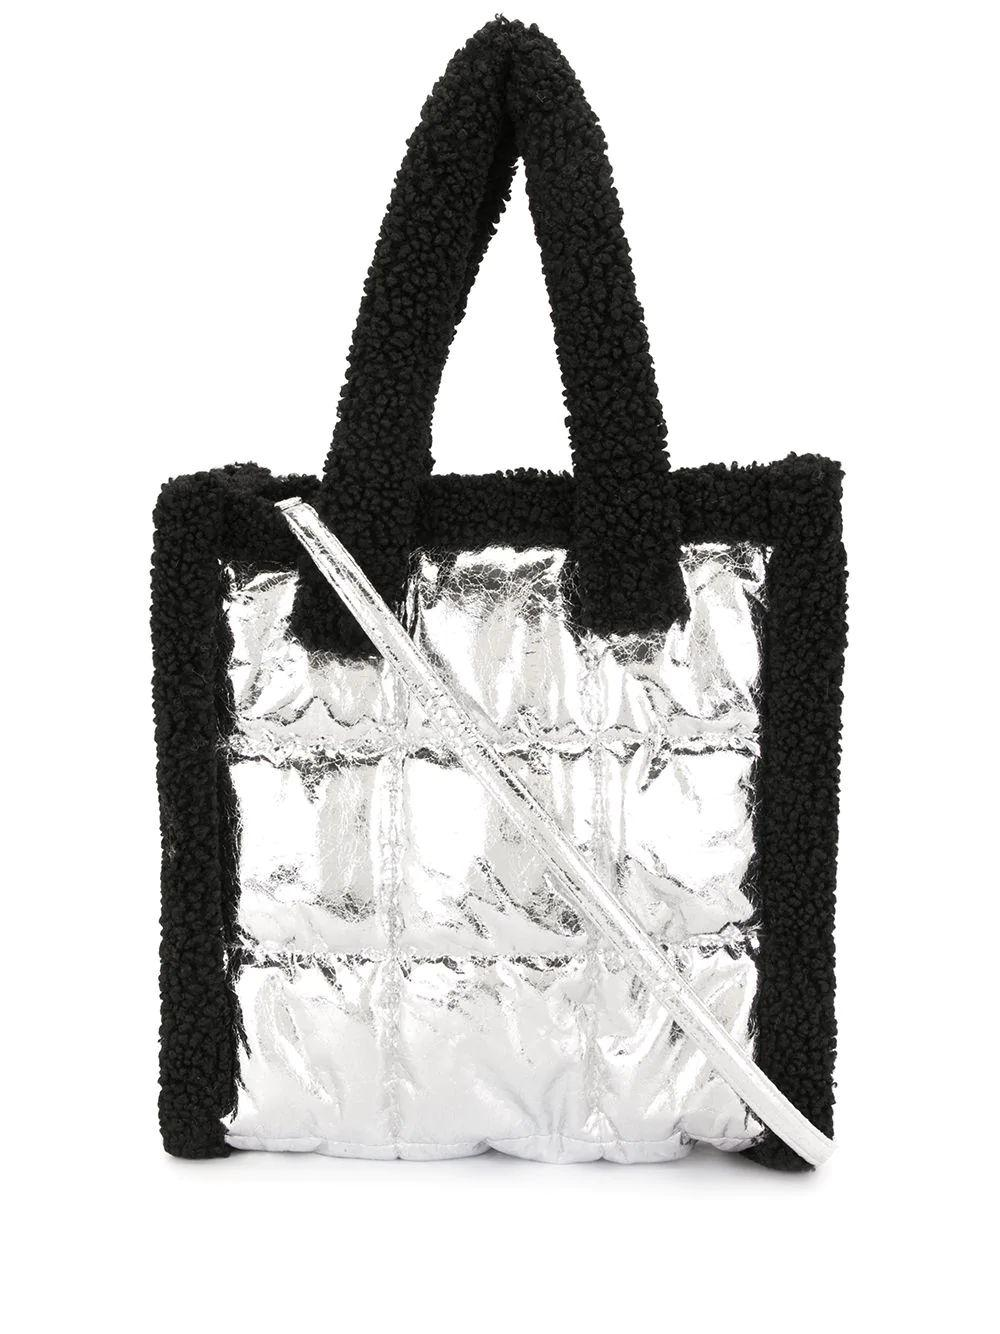 Tone Quilted Tote Bag Item # 61201-8040